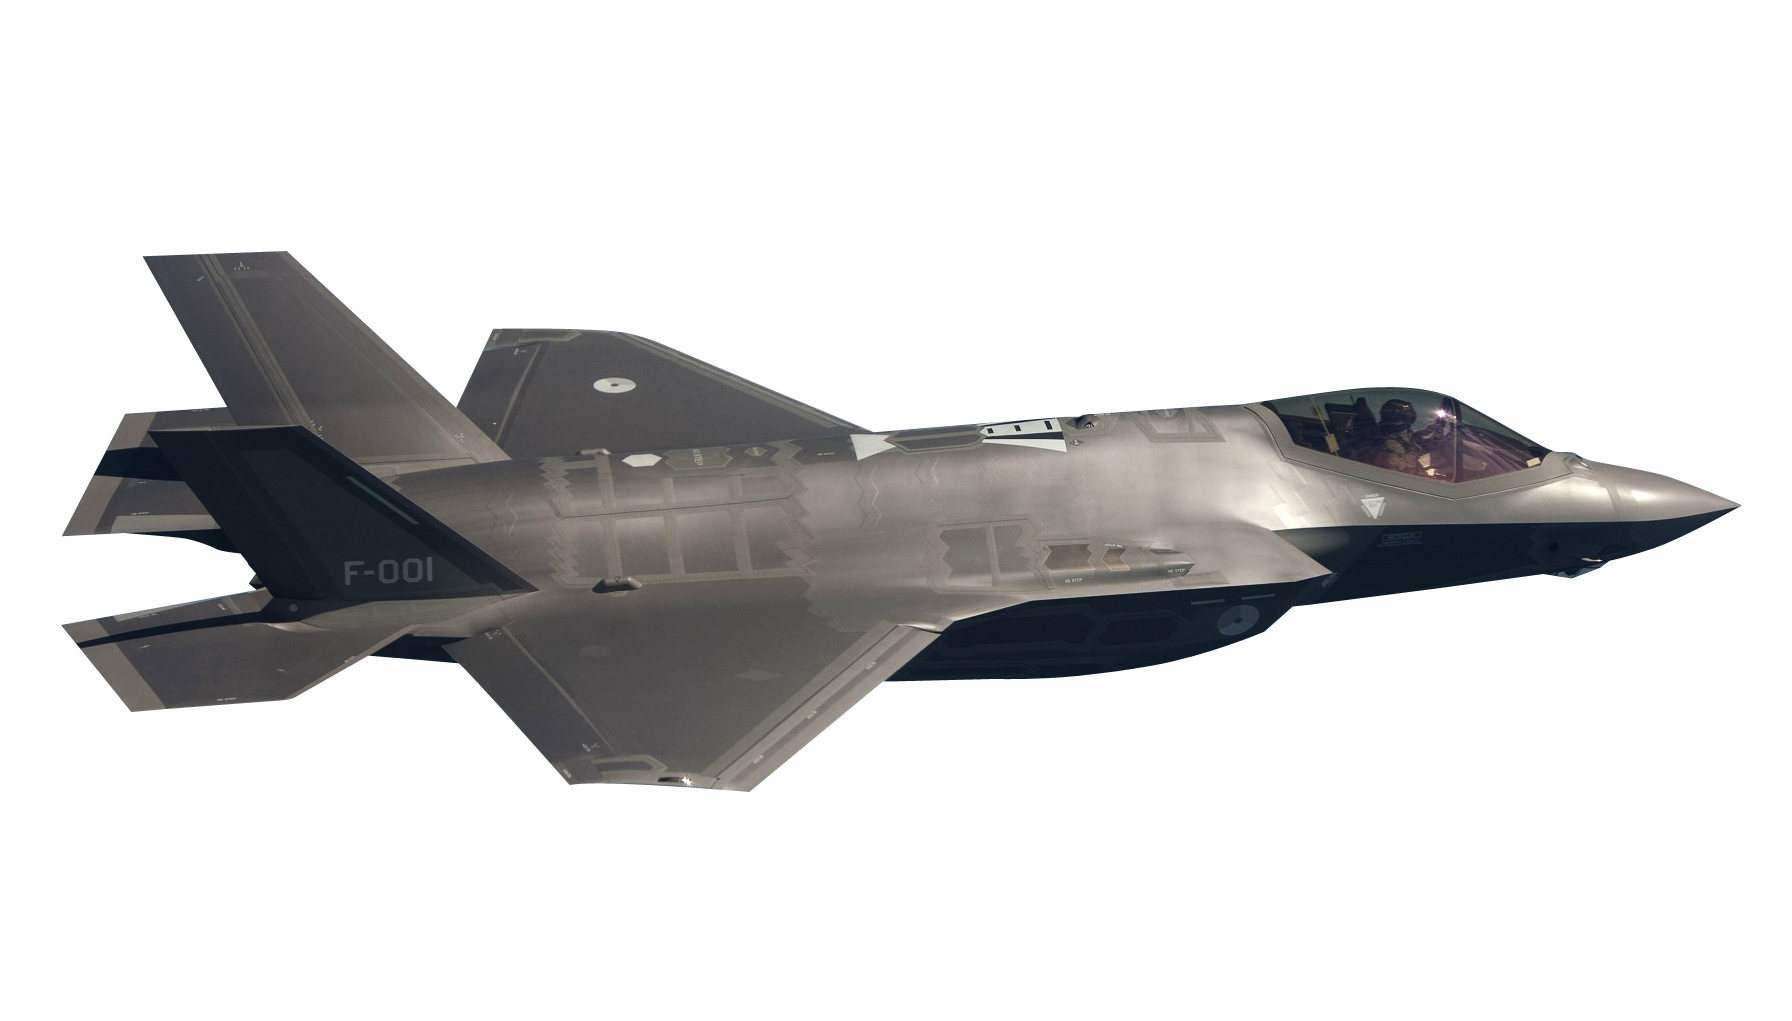 Jet clipart military jet. Png image purepng free